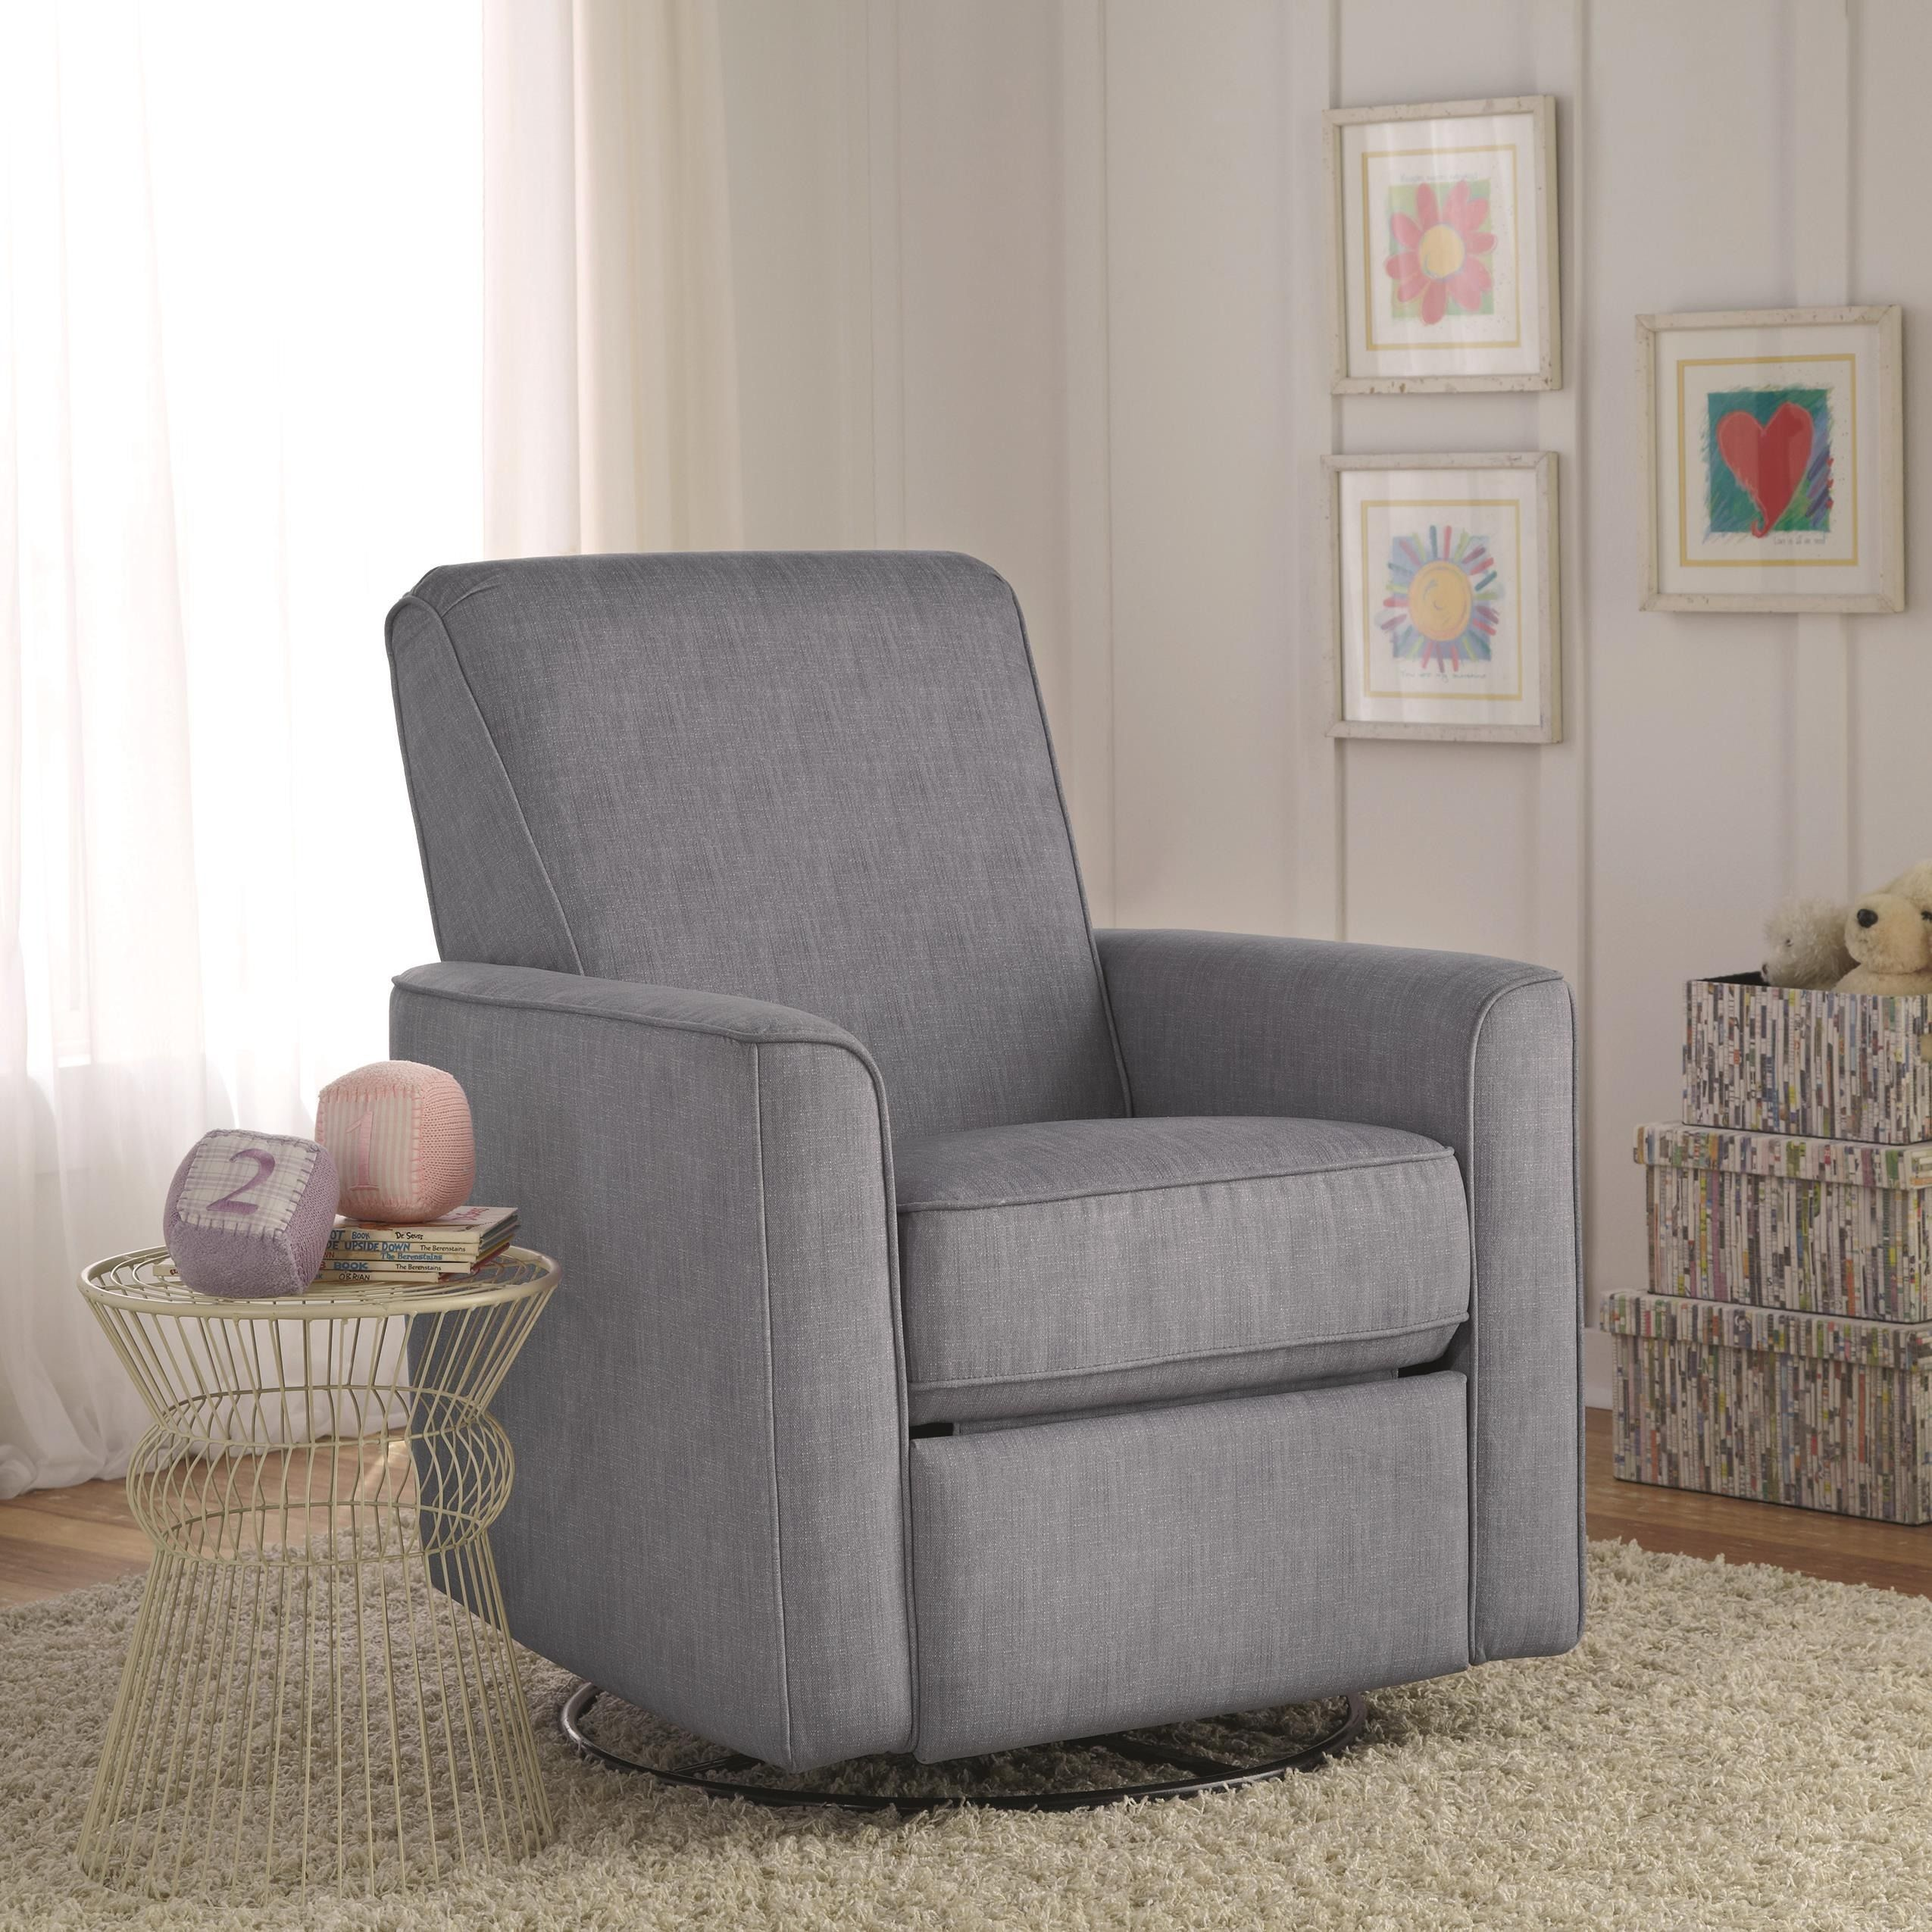 Zoey grey nursery swivel glider recliner chair is handcrafted ...